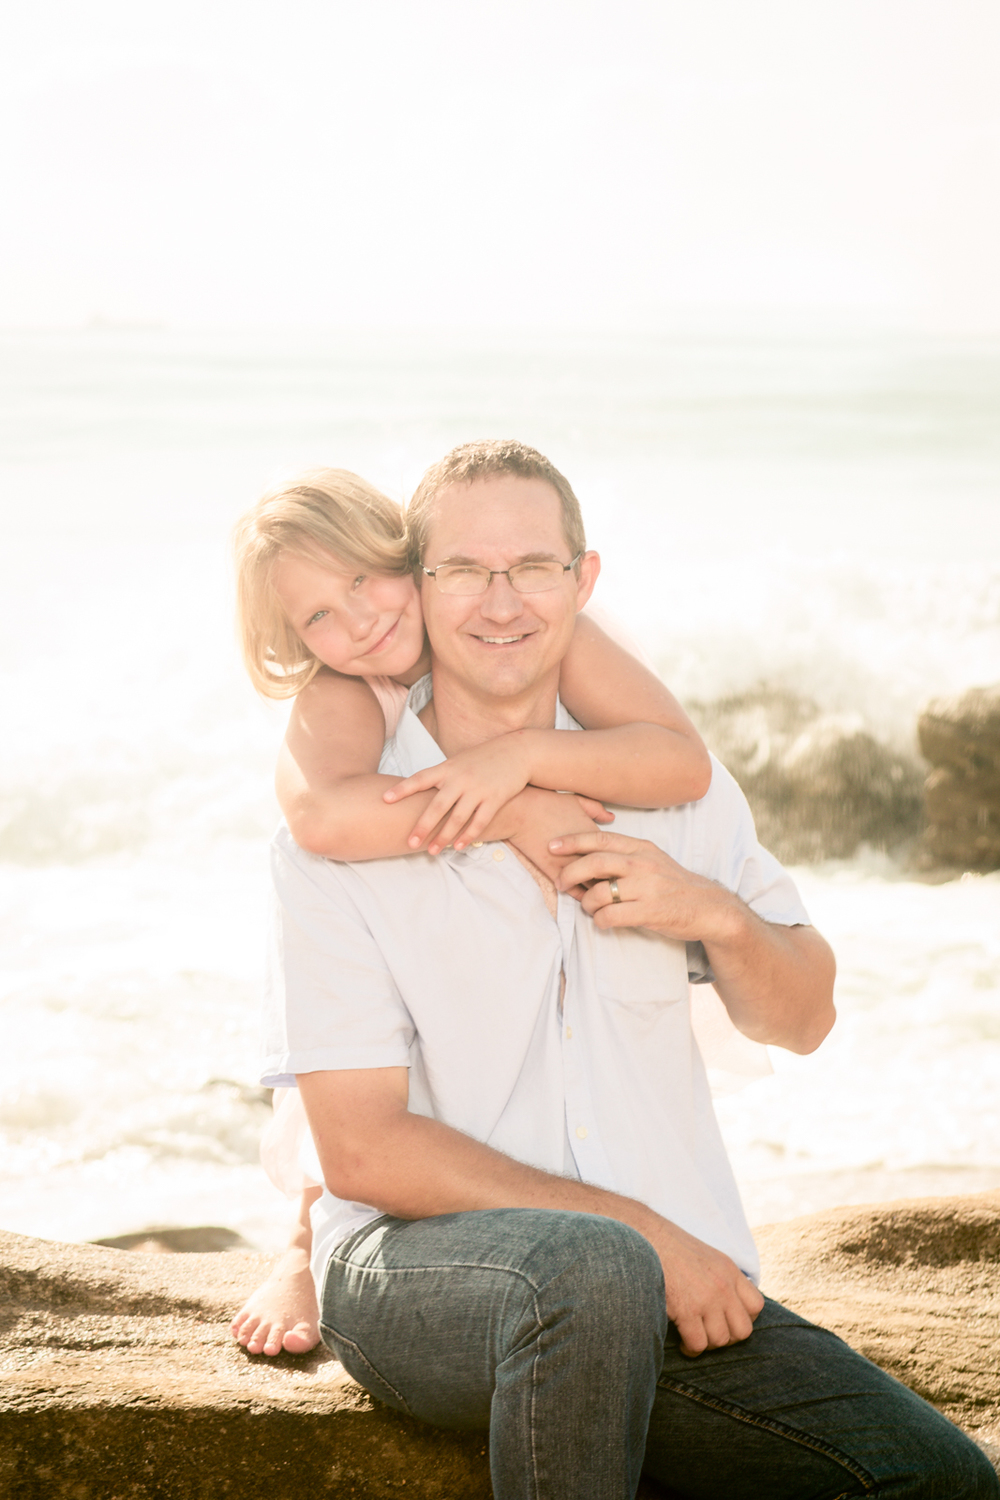 Family photography dad and daughter umhlanga beach rbadal photography